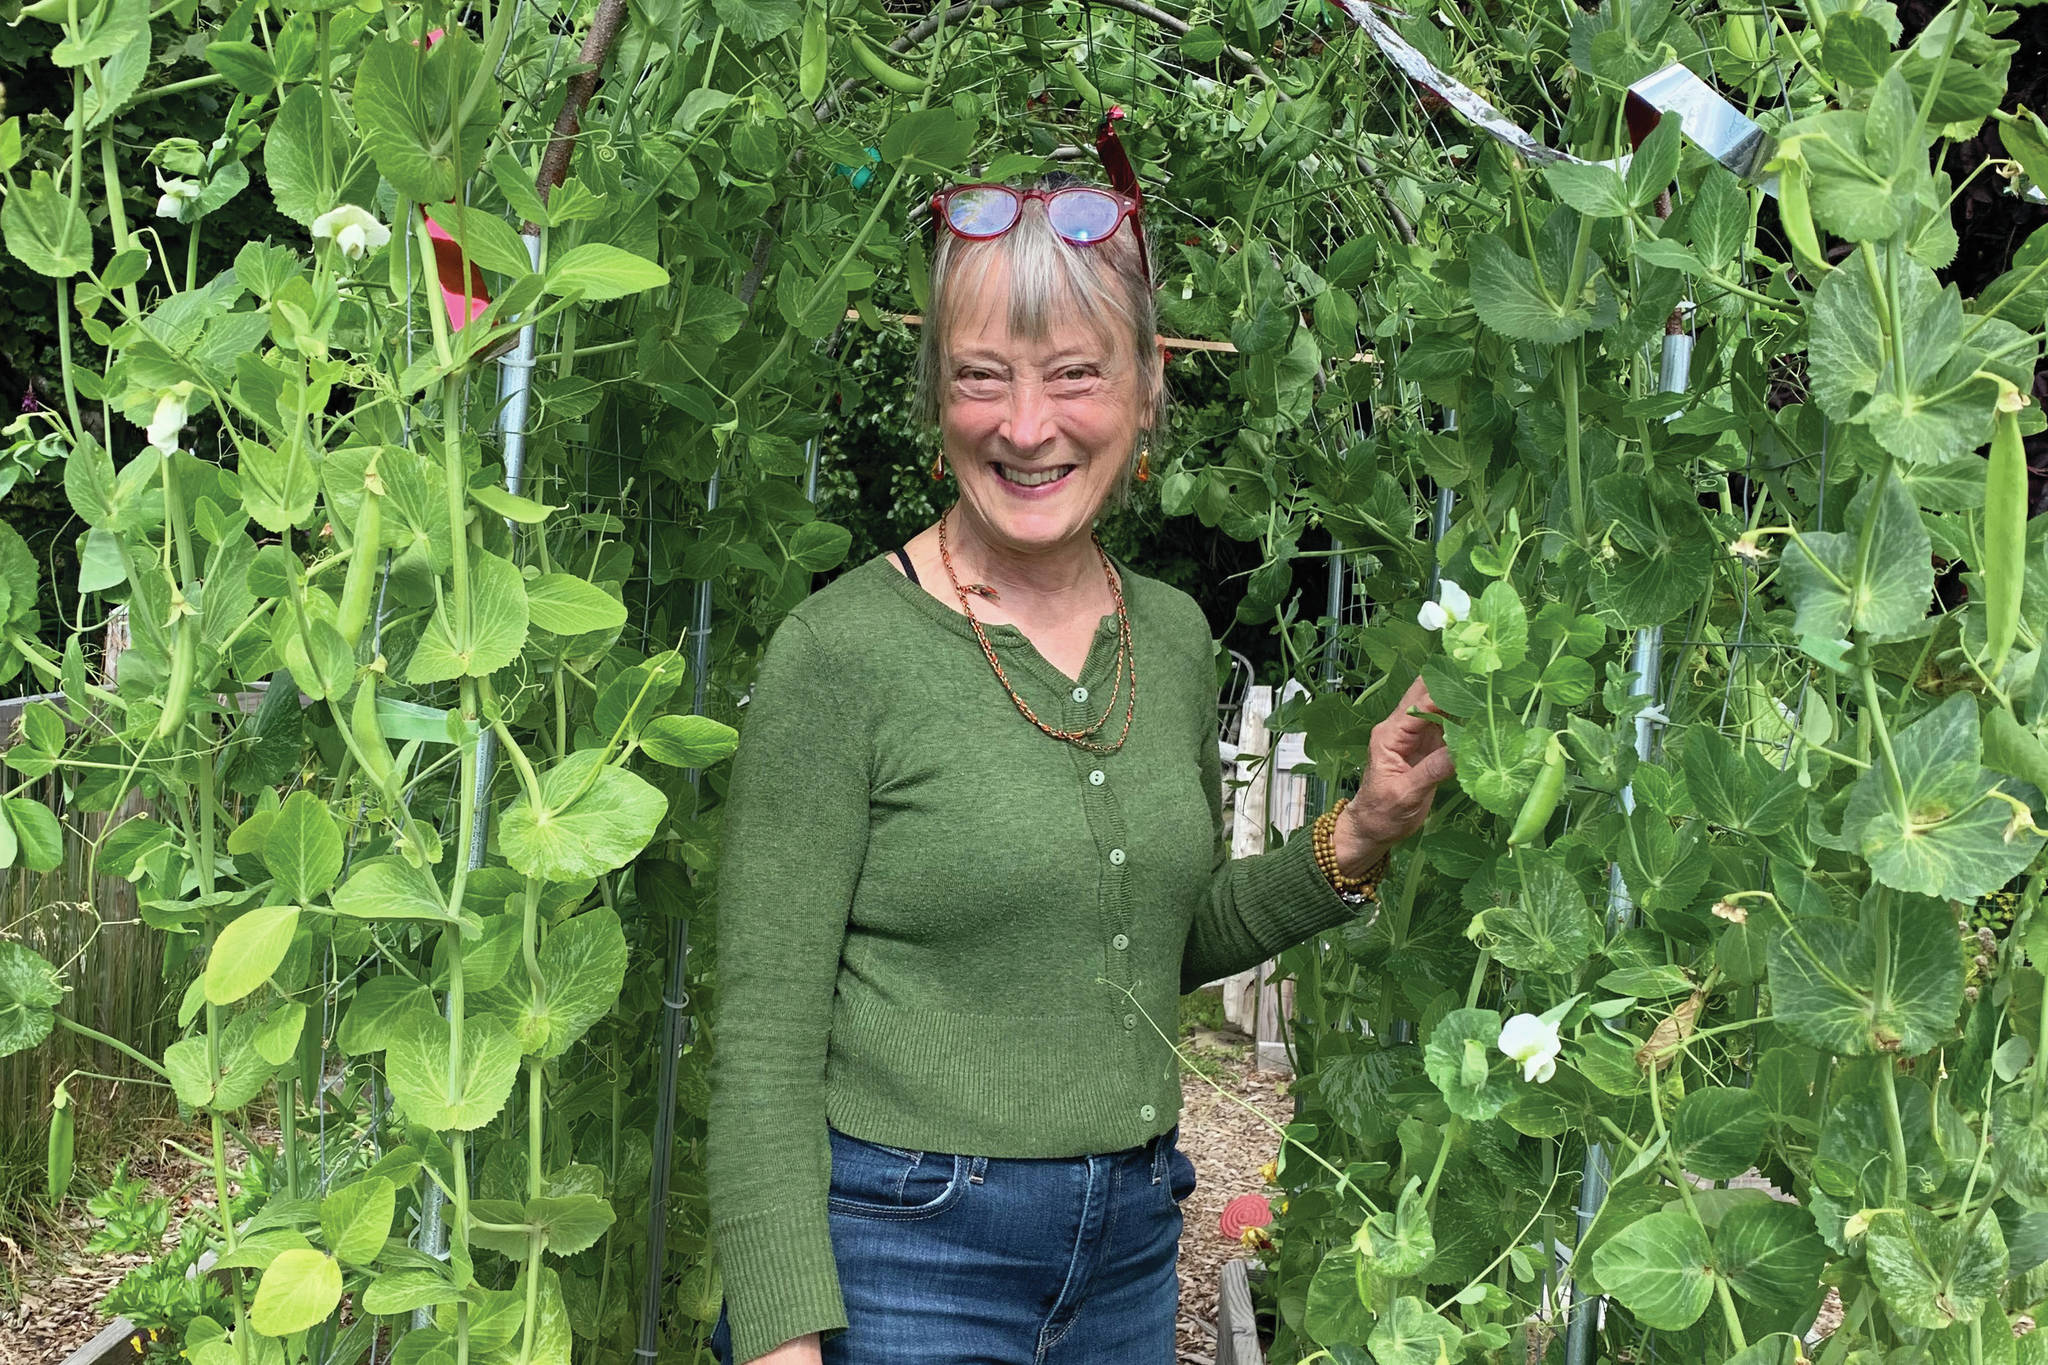 Debi Poore stands under her very successful pea tunnel on Aug. 20, 2021, at her home in Homer, Alaska. (Photo by Rosemary Fitzpatrick)